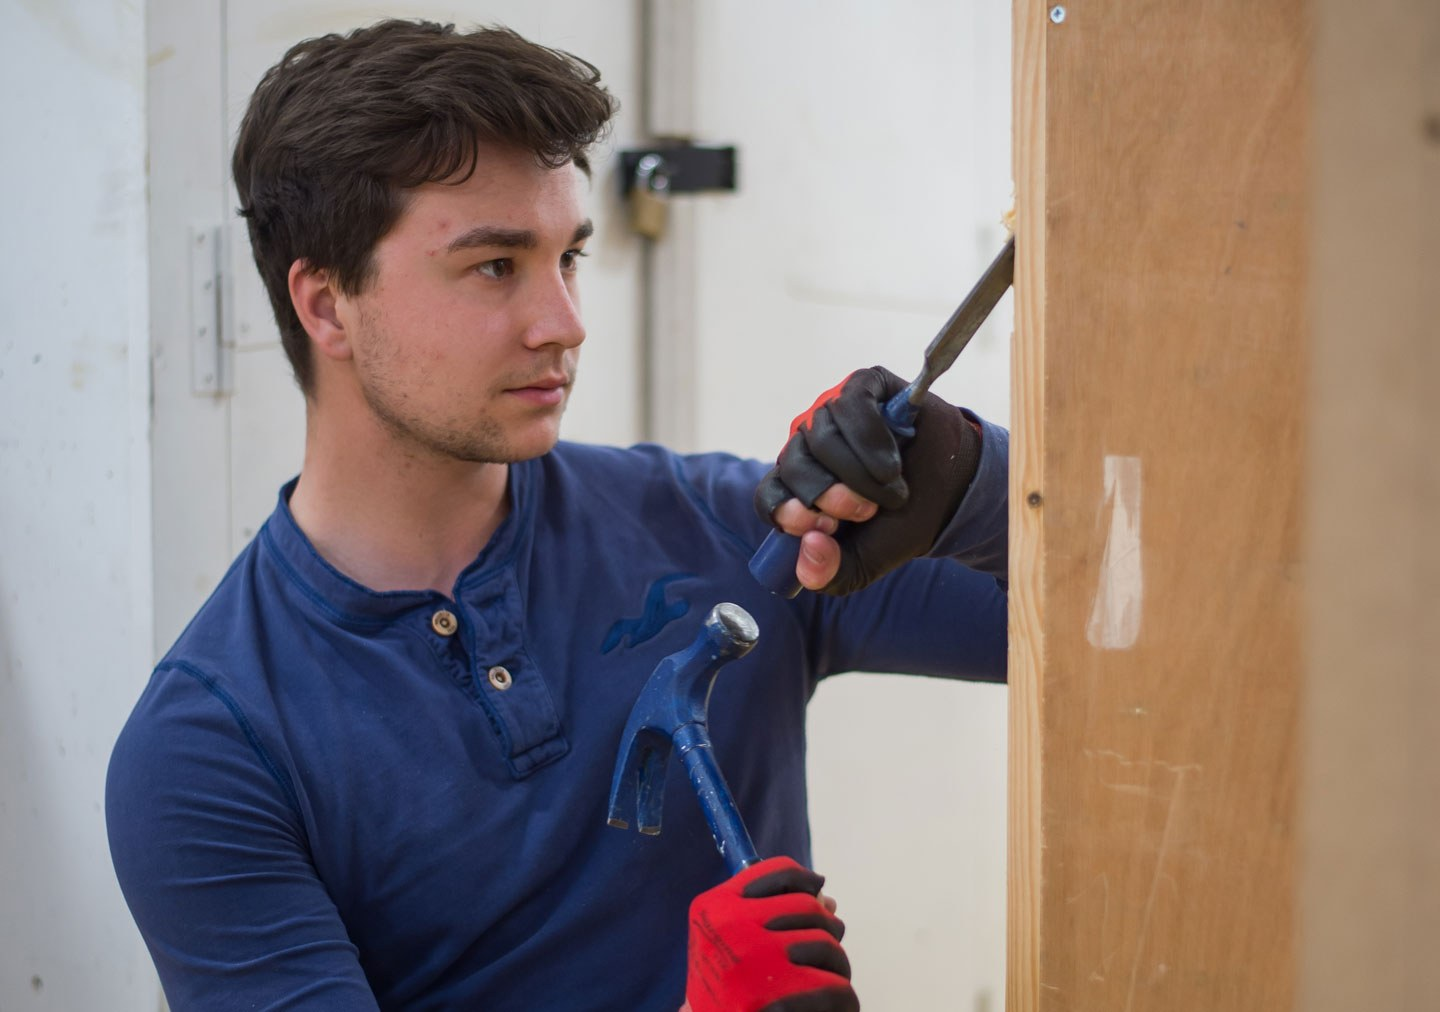 Student using a hammer and chisel